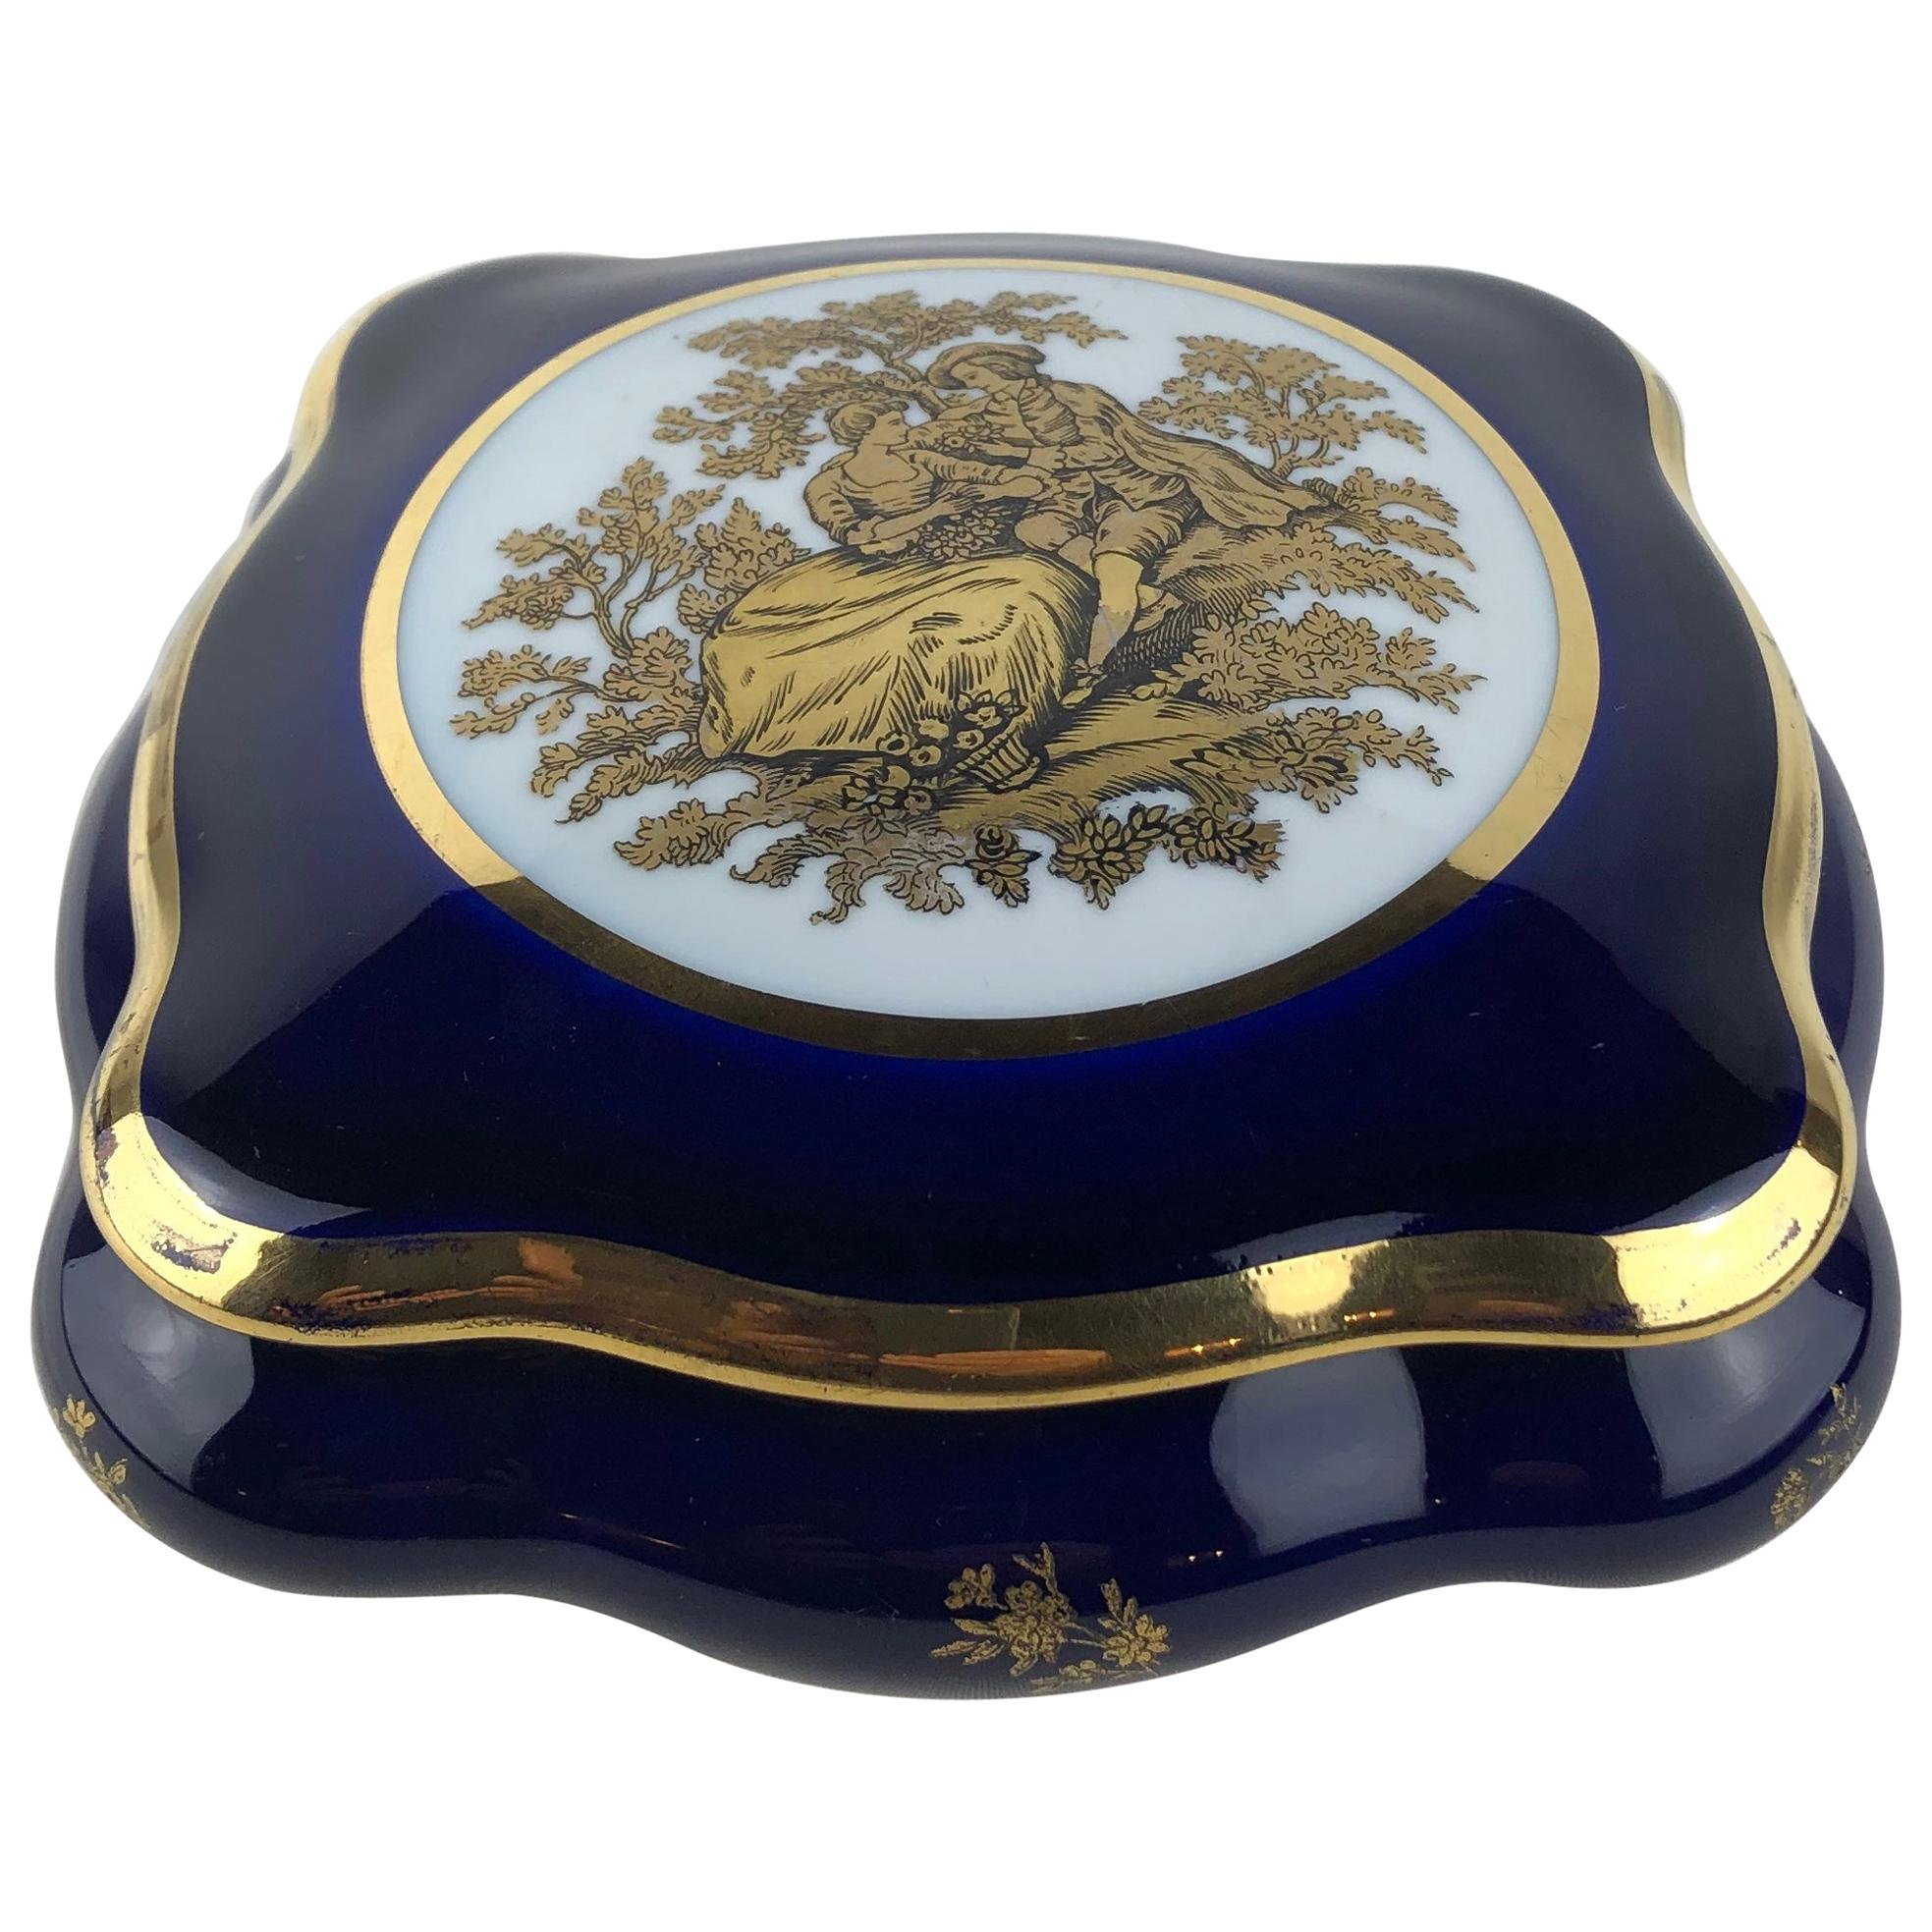 Limoges Porcelain Lidded Candy Dish, Trinket or Jewelry Box